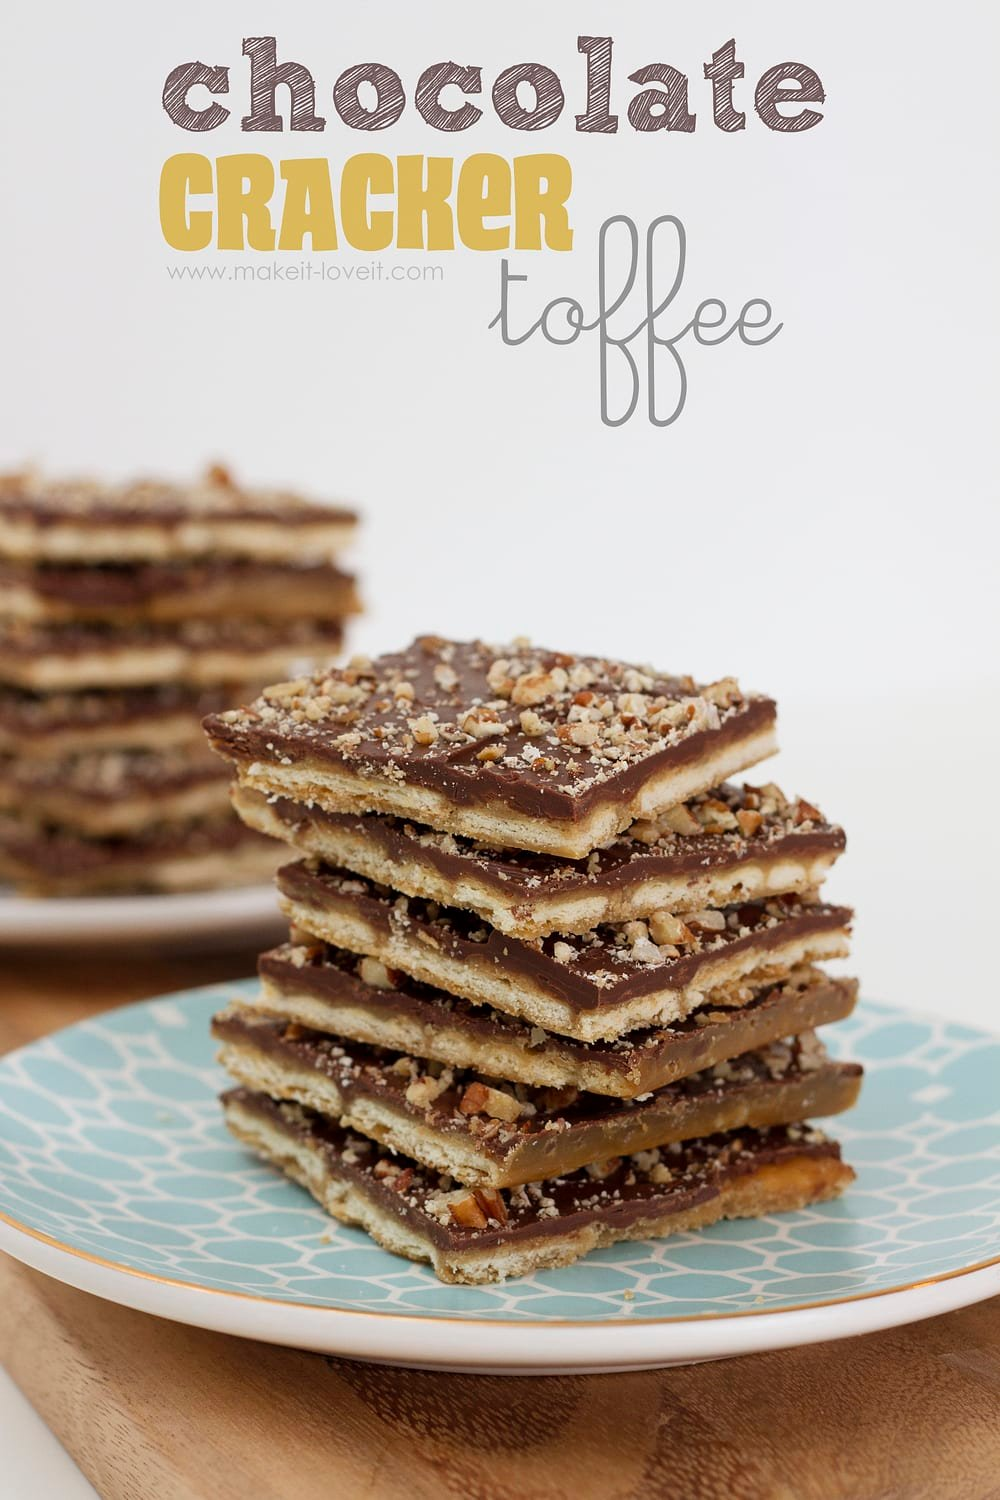 Chocolate cracker toffee……sweet and salty…..yum!